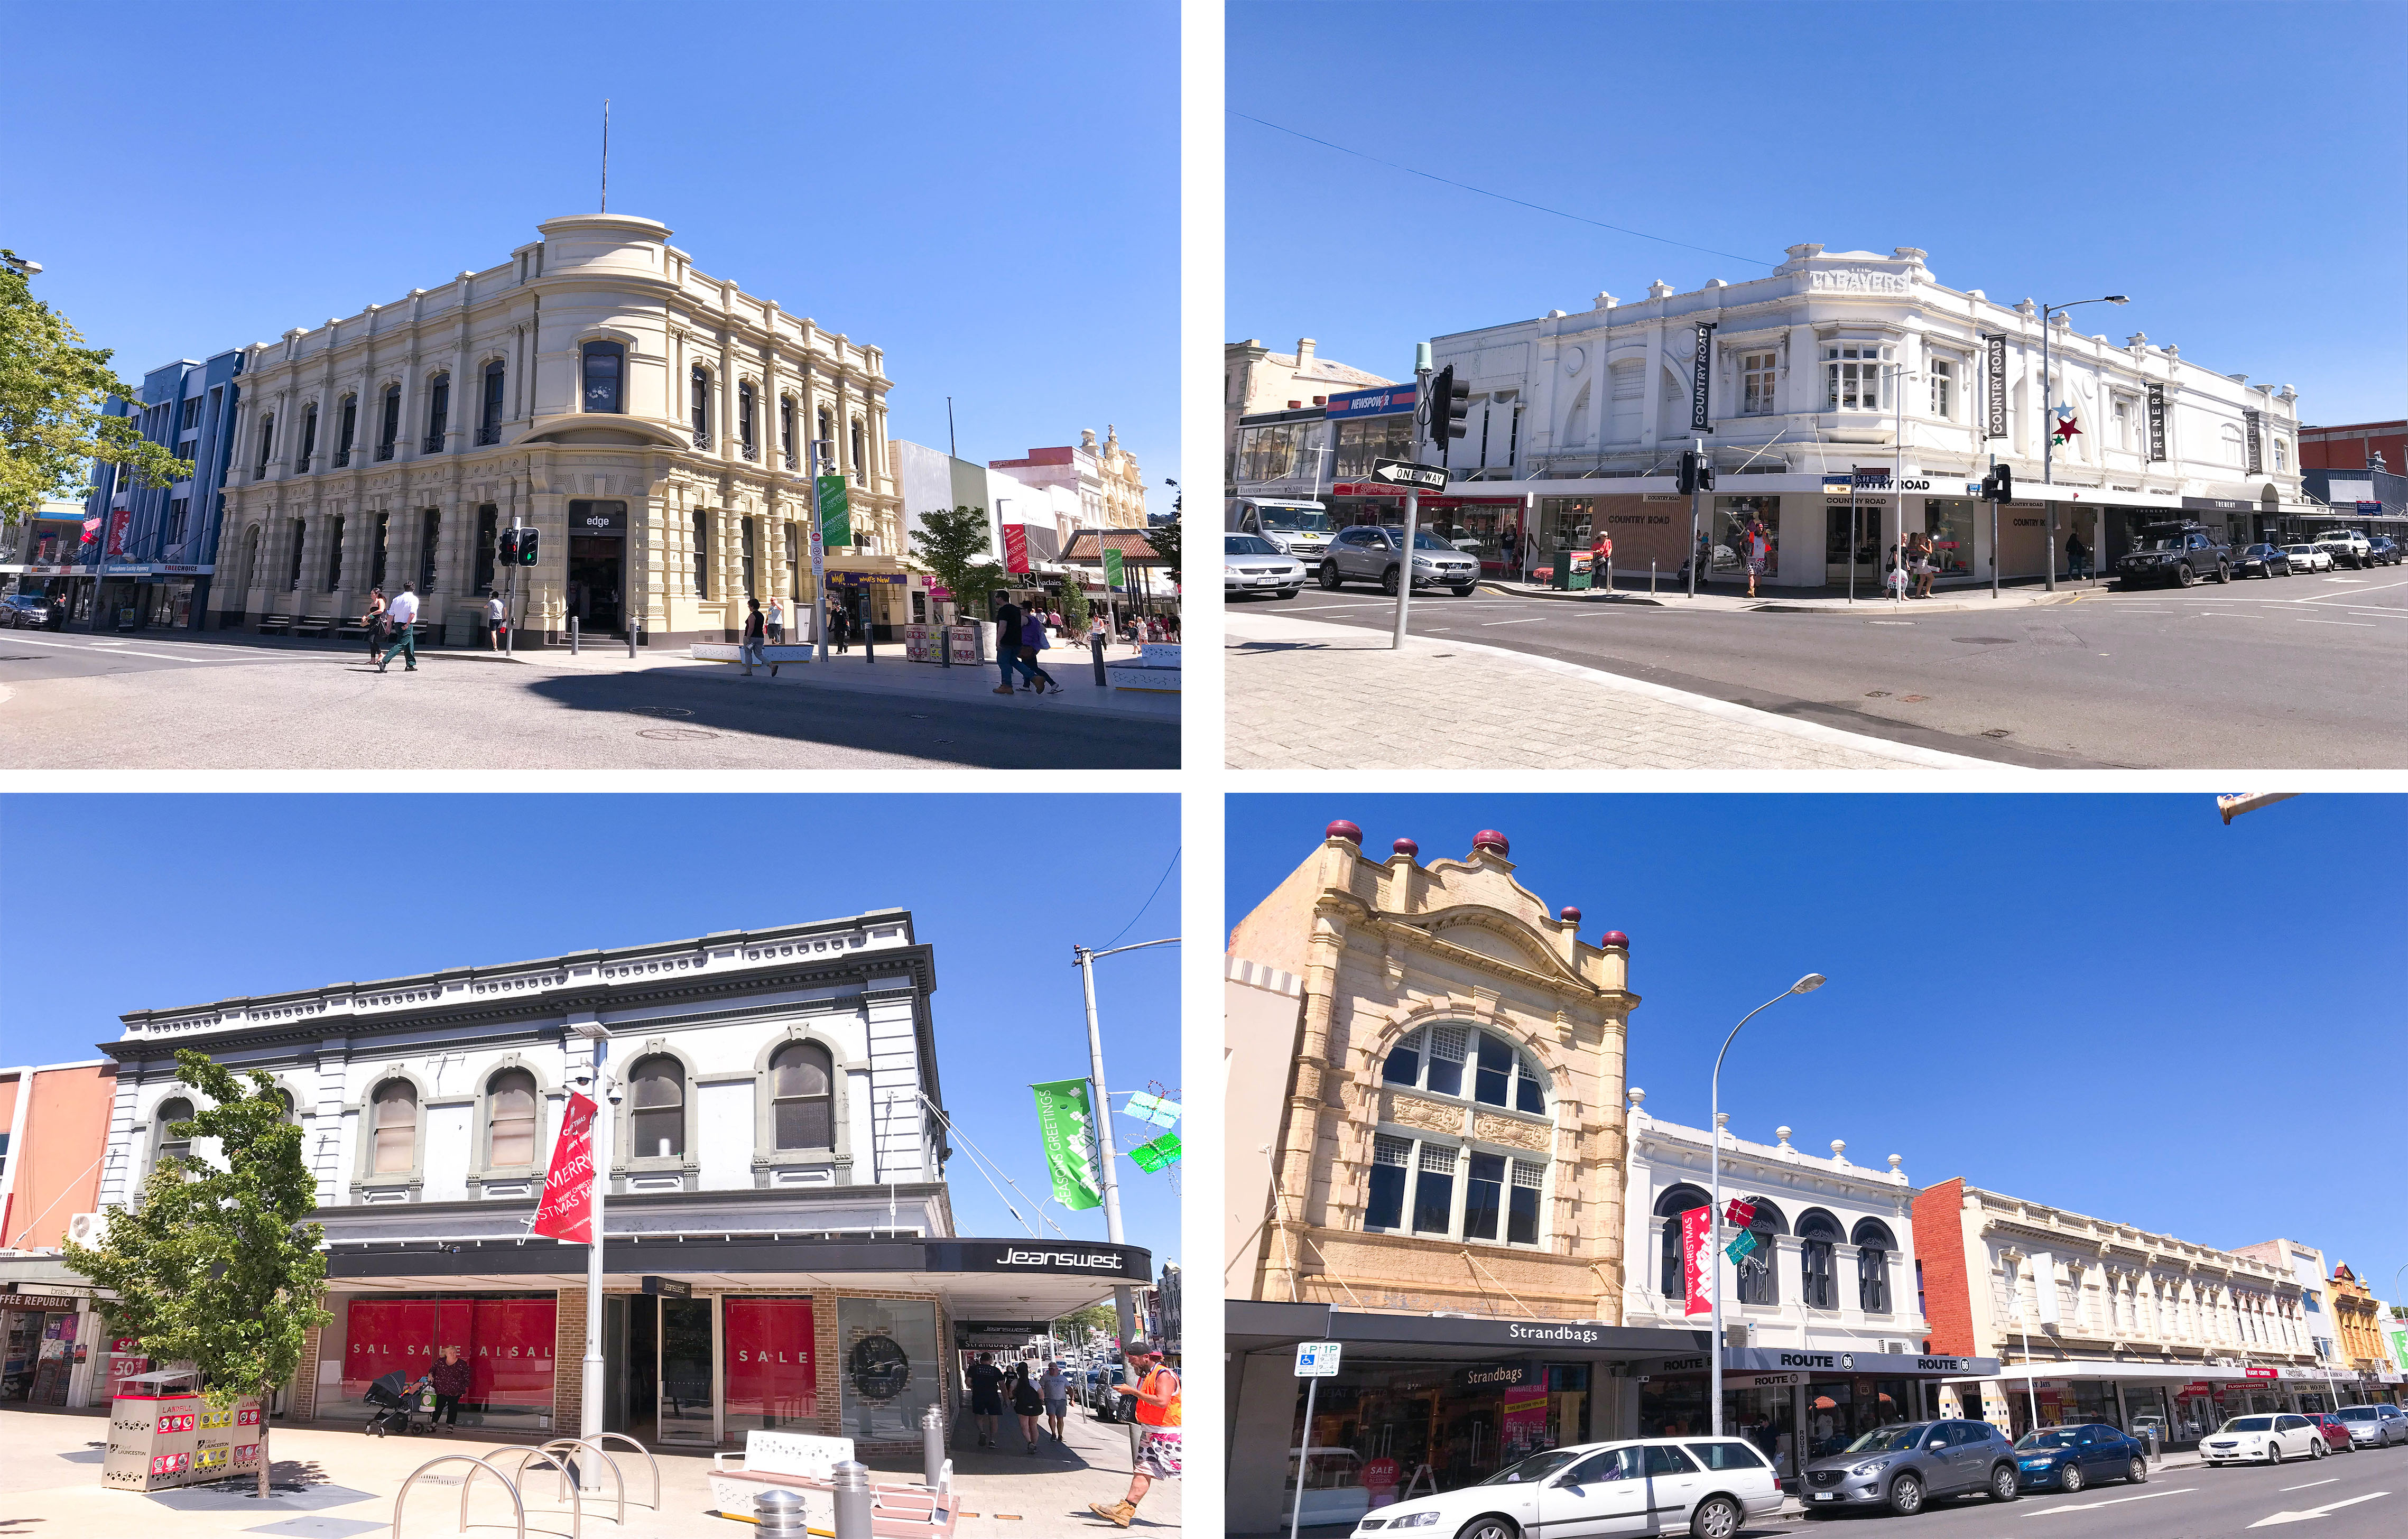 Shopping malls in Launceston